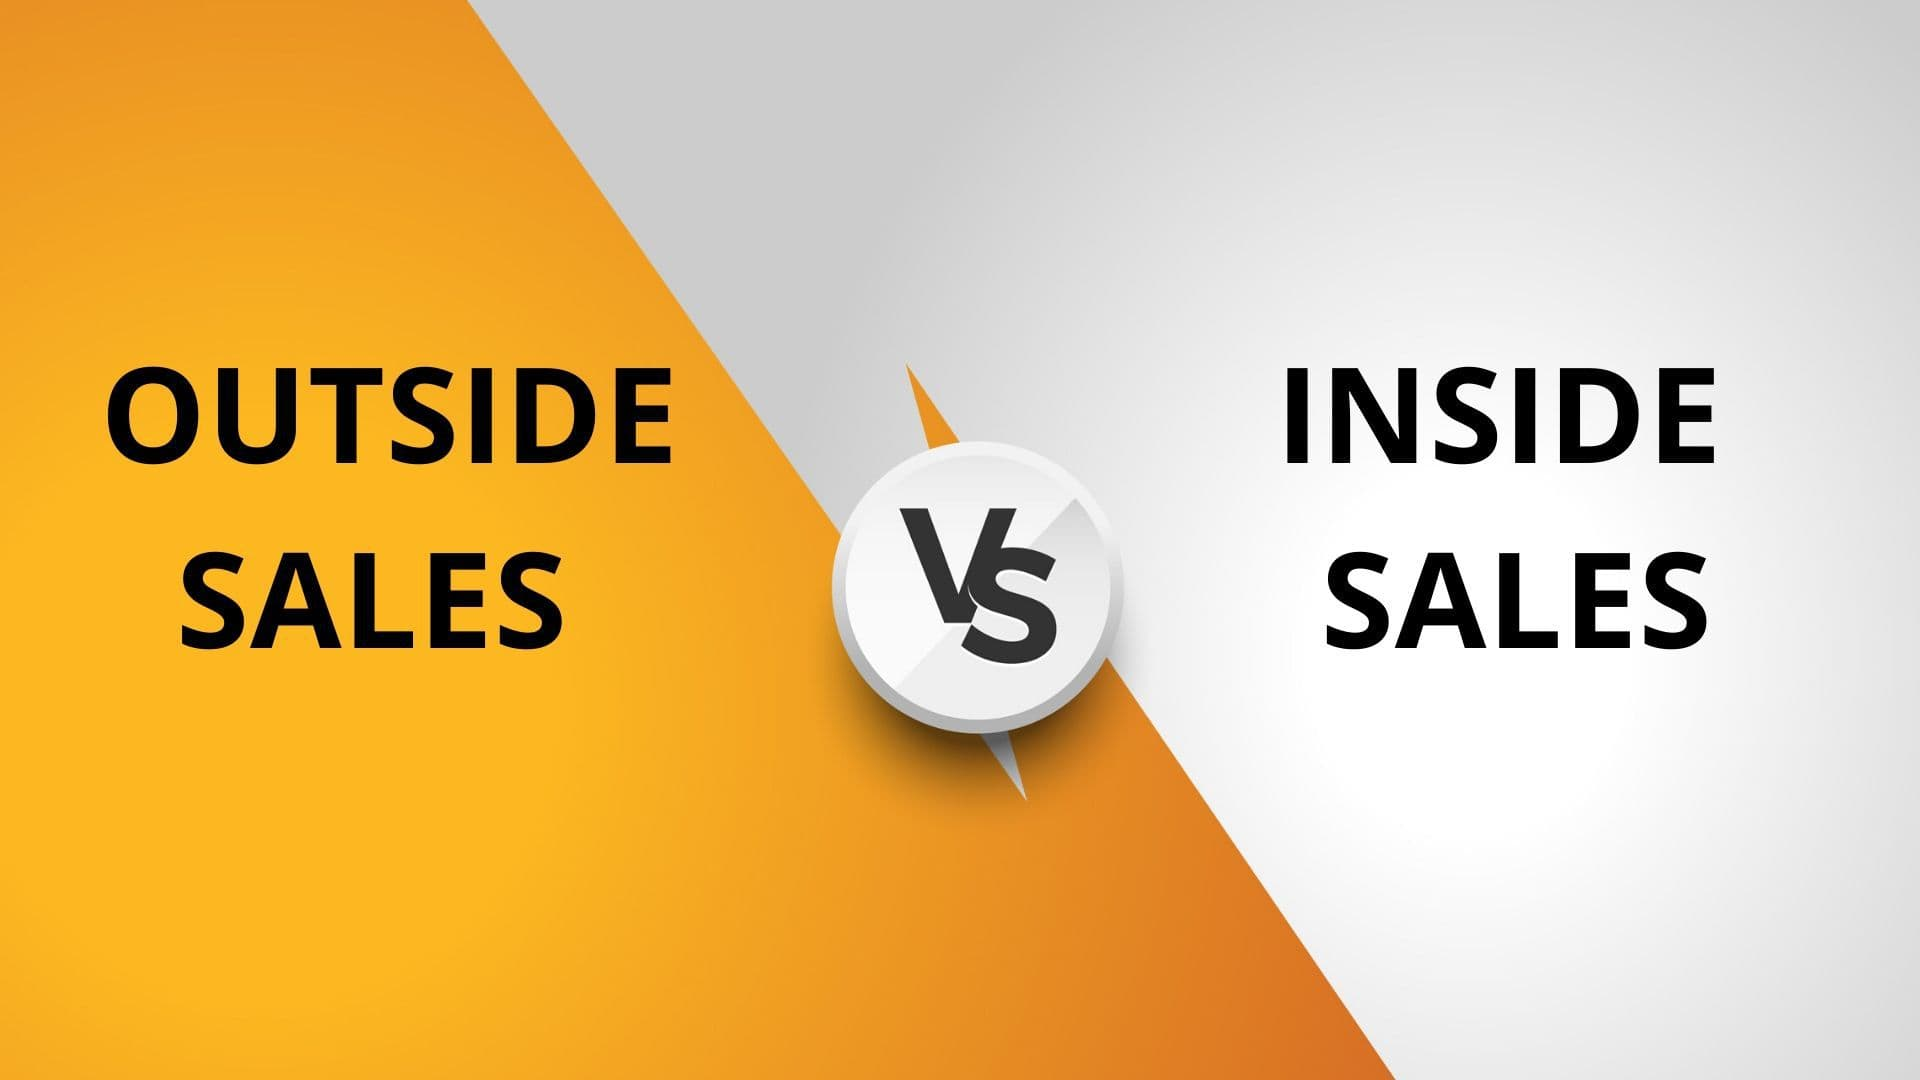 Difference between Outside sales and Inside sales - 1